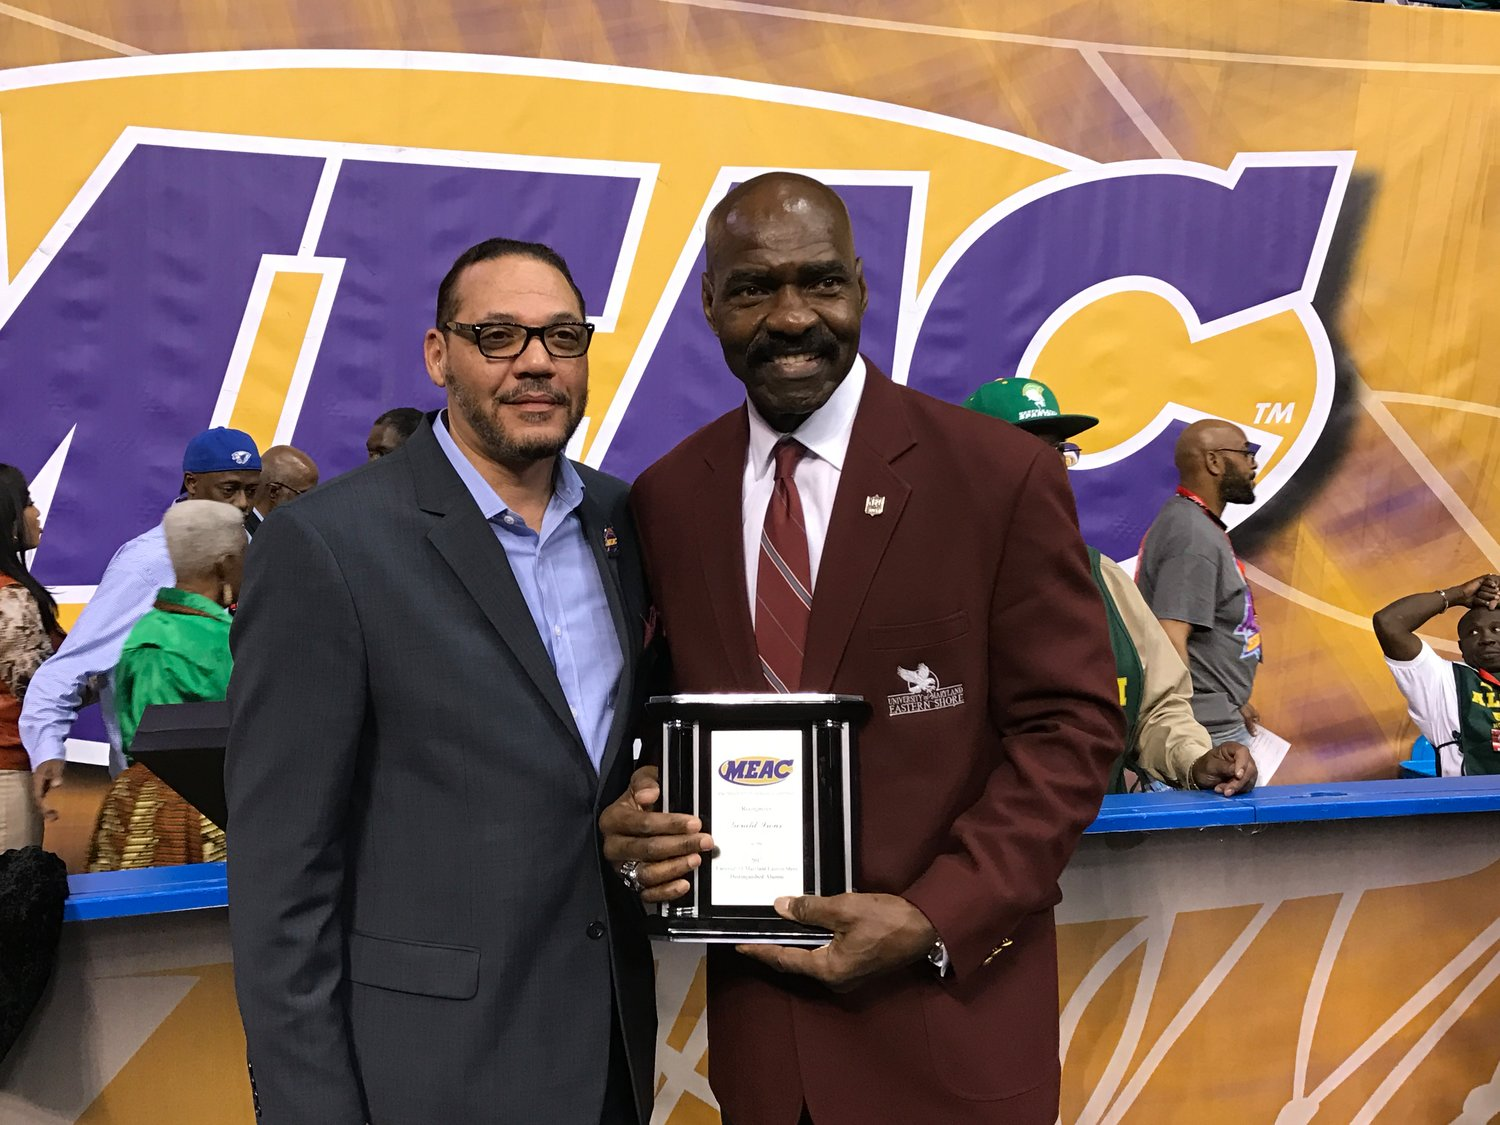 Athletic Director Keith Davidson presents Gerald Irons with